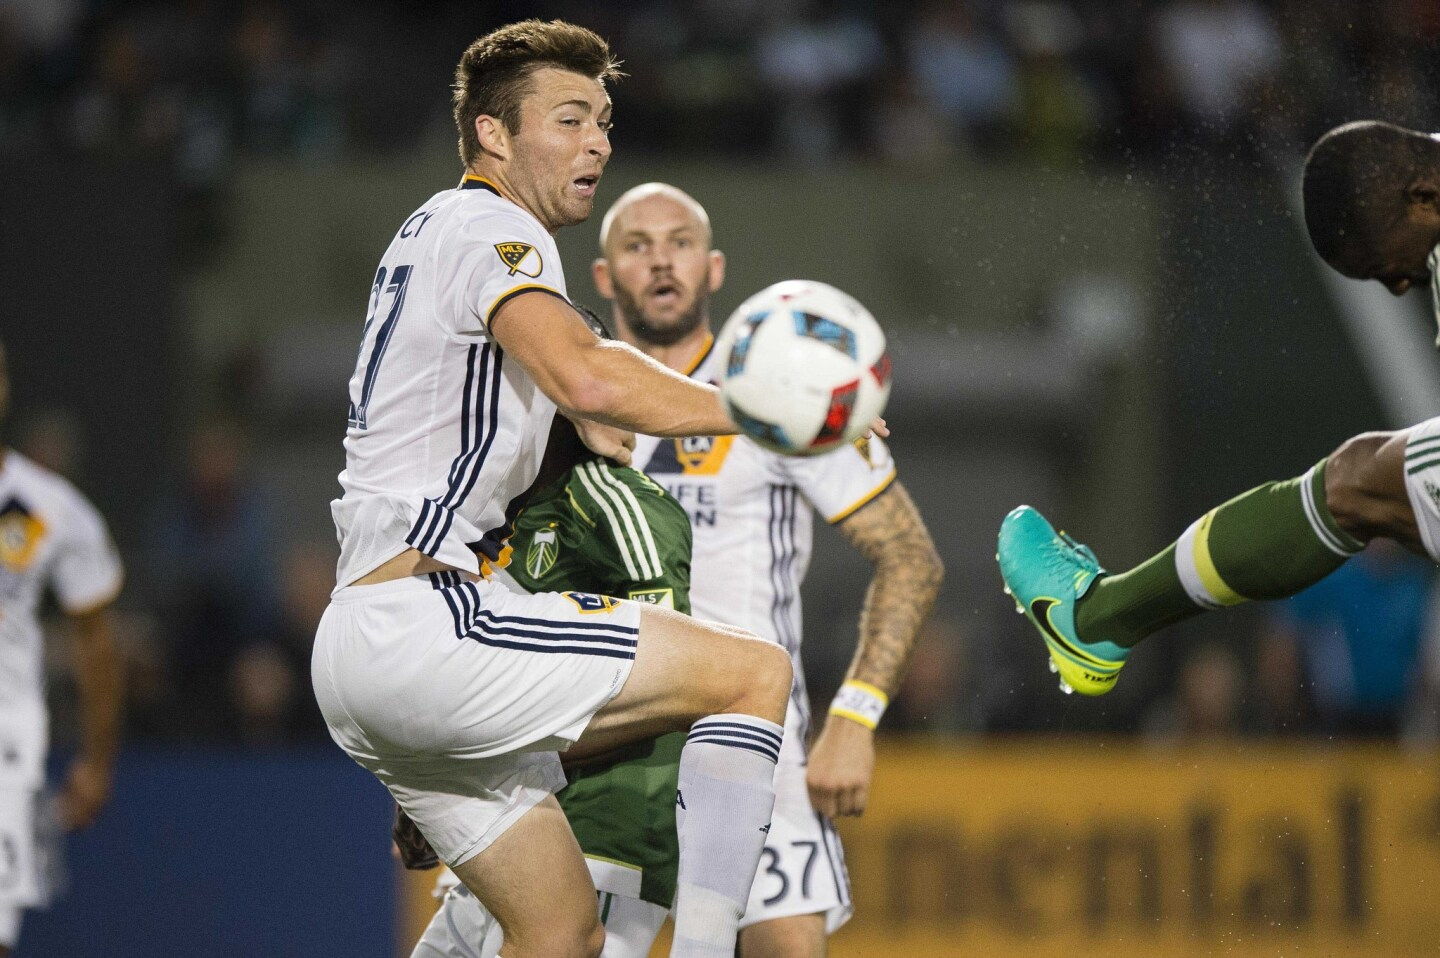 June 29, 2016; Portland, OR, USA; Los Angeles Galaxy defender Dave Romney (27) helps defend the goal during the second half in a game against the Portland Timbers at Providence Park. The Galaxy won 1-0. Mandatory Credit: Troy Wayrynen-USA TODAY Sports ** Usable by SD ONLY **